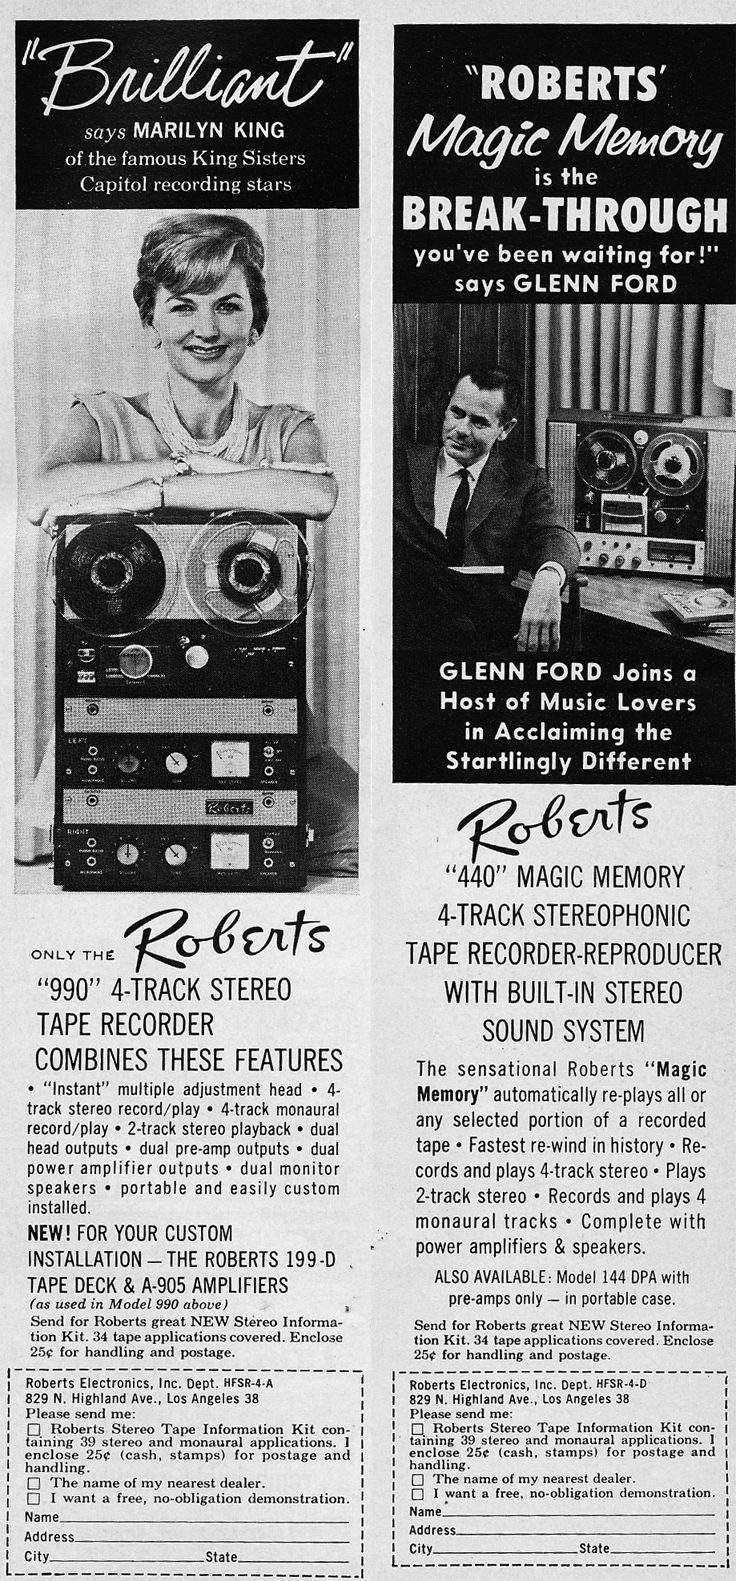 1961 ad for the Roberts 990 reel to reel tape recorder featuring Marilyn King and Glenn Ford in Phantom Productions' vintage recording collection